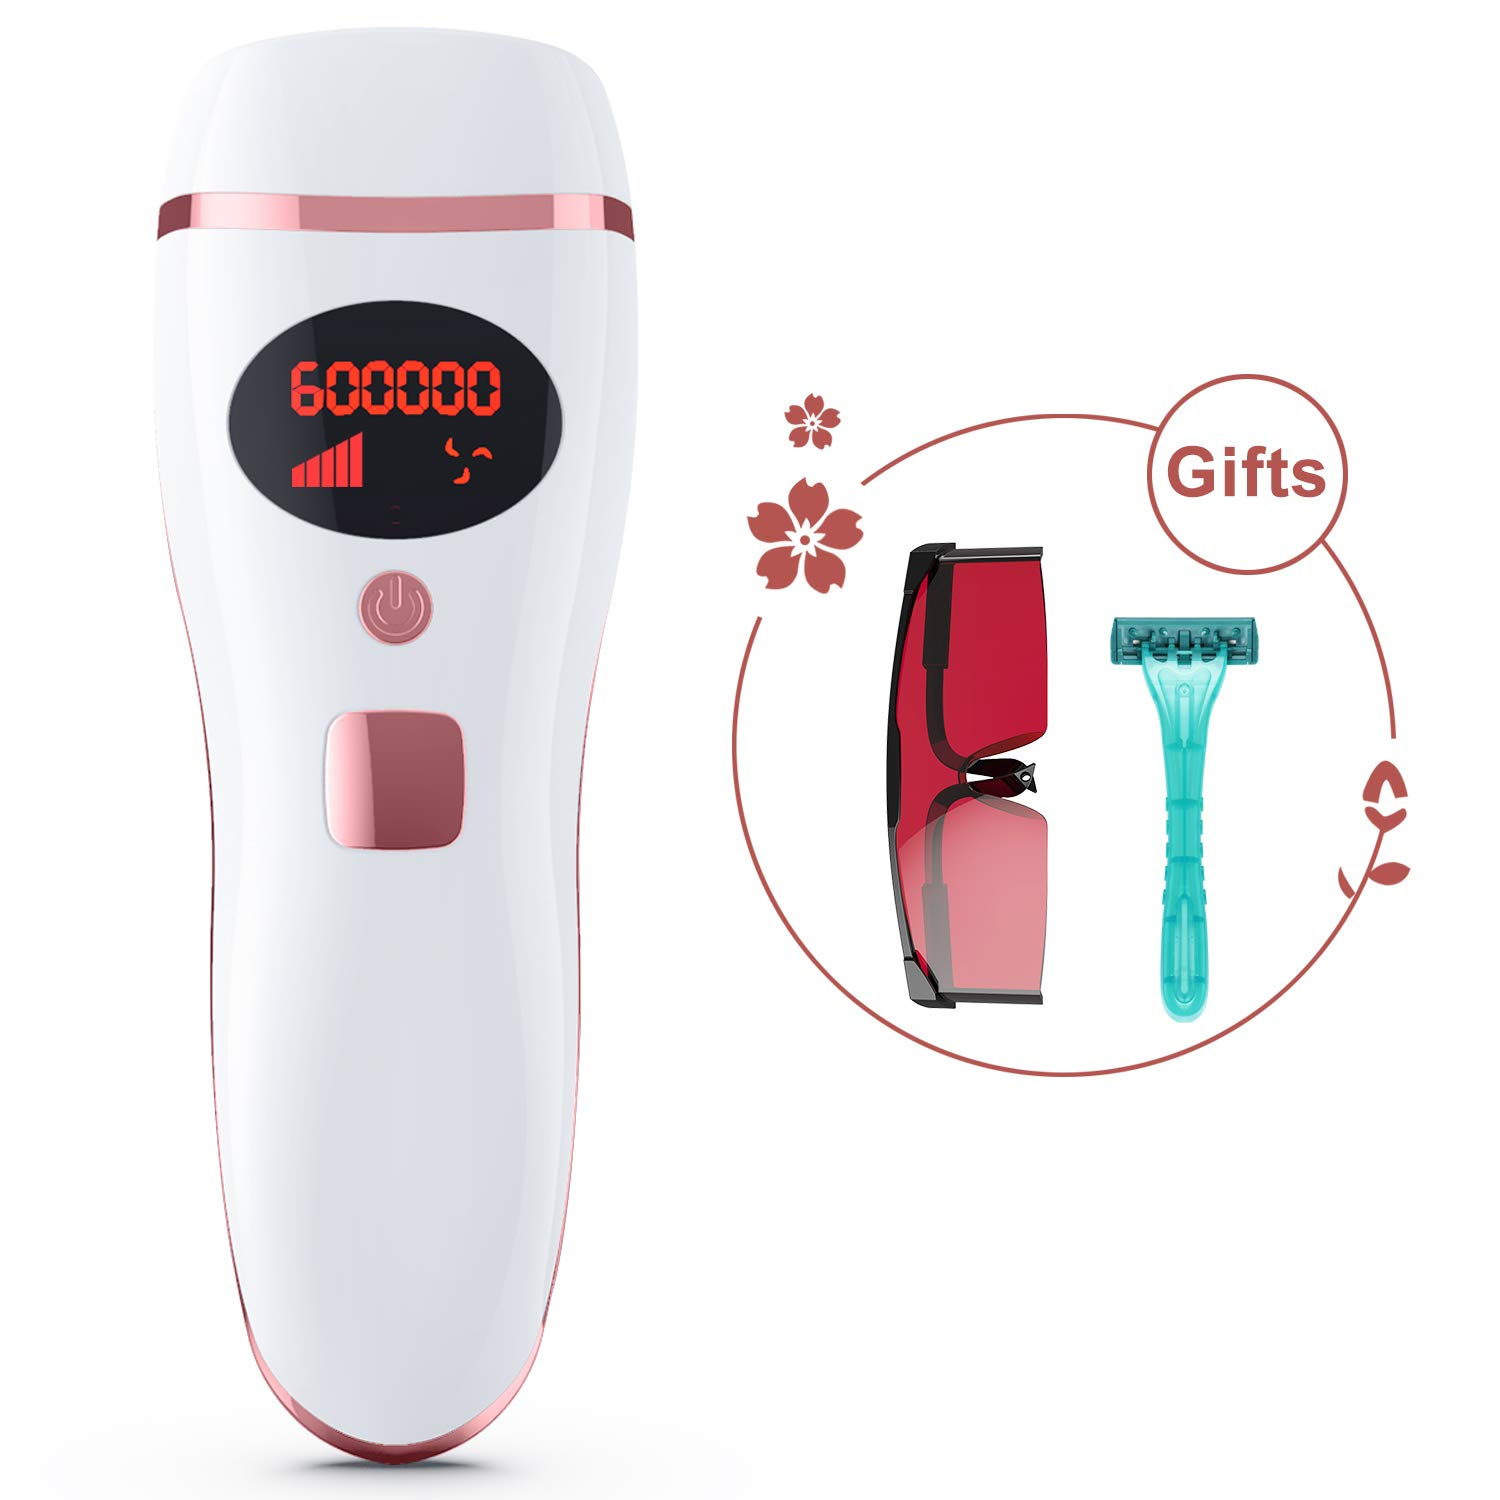 IPL Hair Removal Device, Permanent Hair Removal System for Women and Men Professional Painless Use for Home 600,000 Flashes White Rose